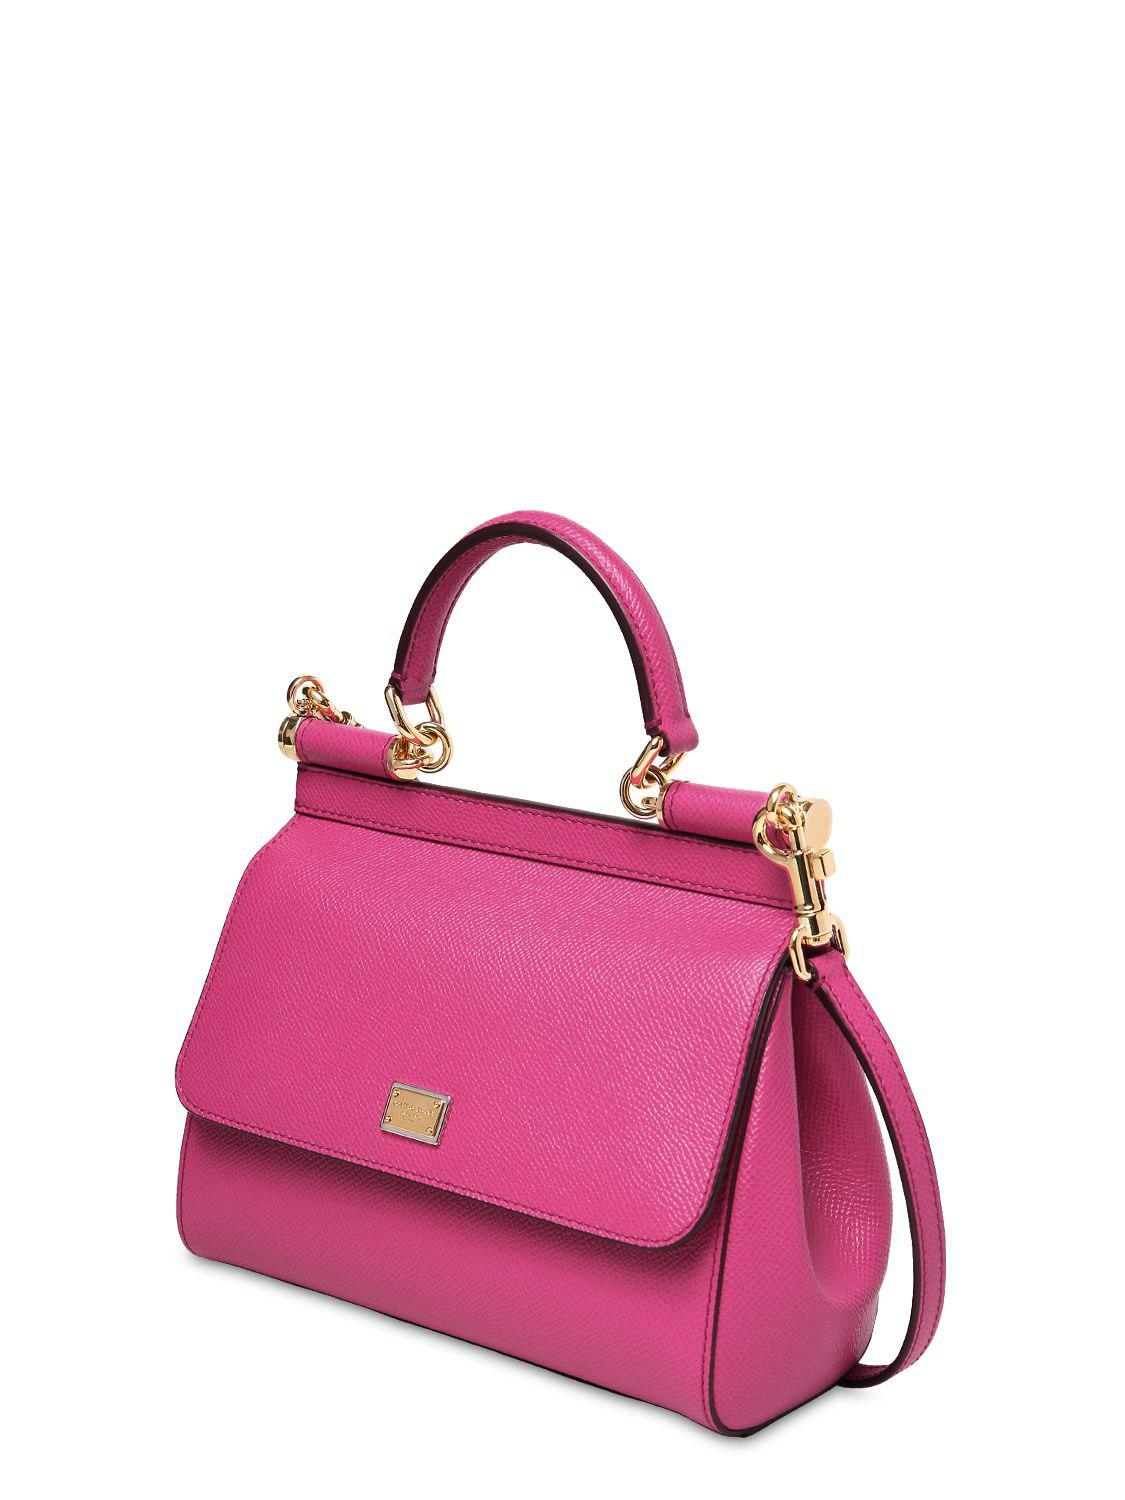 Dolce   Gabbana - Pink Small Sicily Dauphine Leather Bag - Lyst. View  fullscreen 3ae7f89c586d0